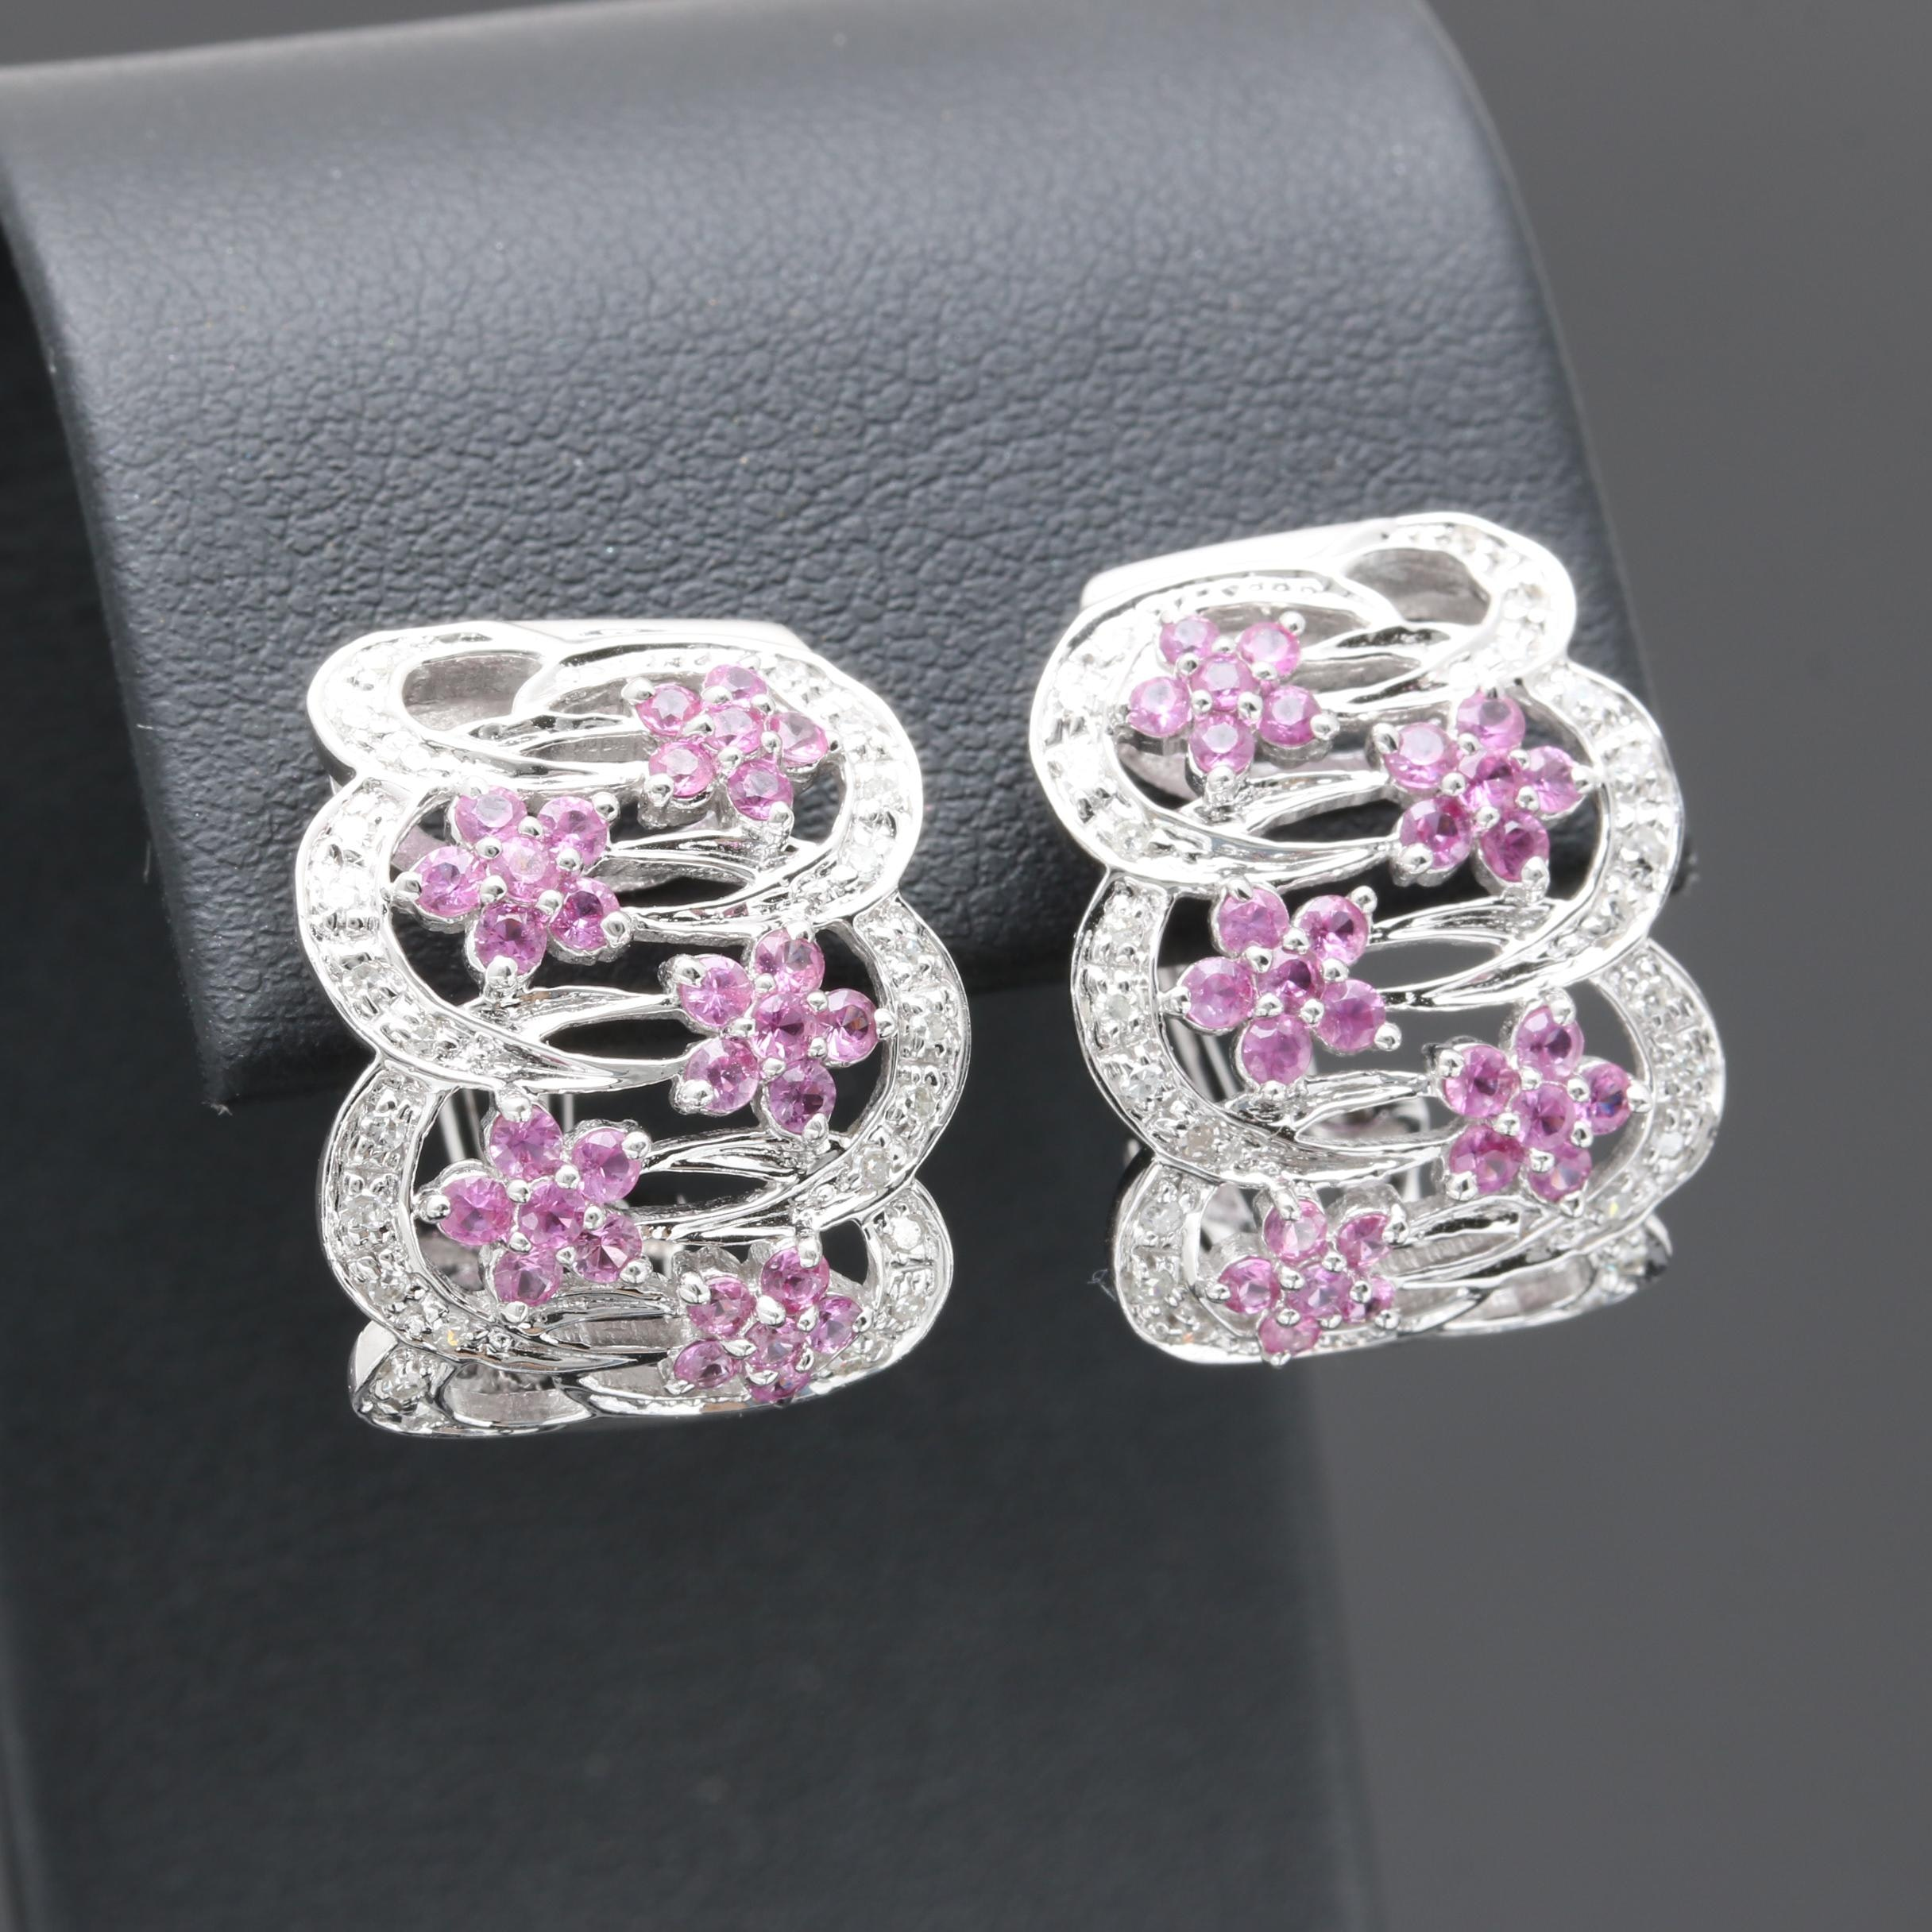 14K White Gold Pink Sapphire and Diamond Half Hoop Earrings